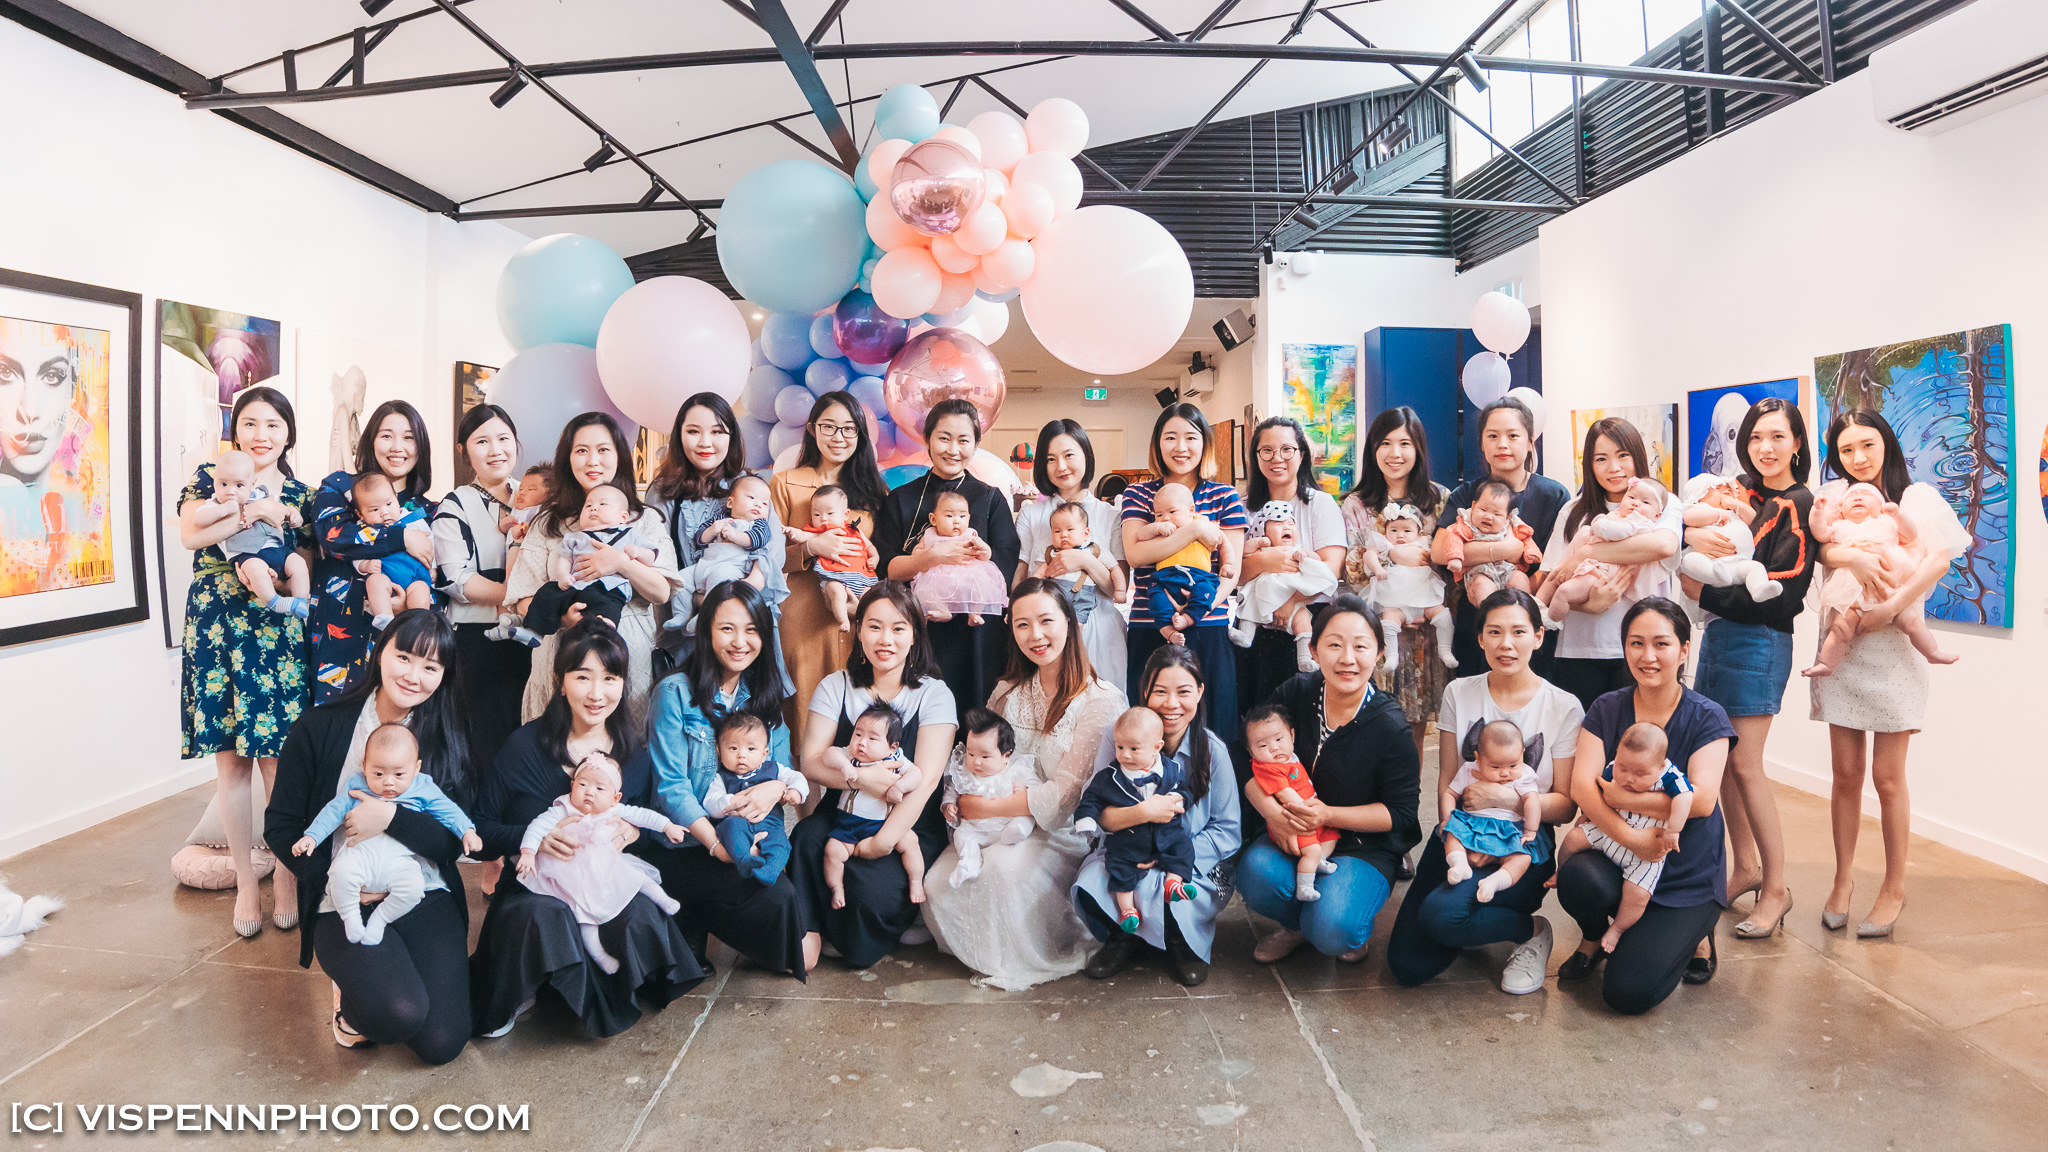 Melbourne Baby Family Birthday Party Photographer 墨尔本 百日宴 满月宴 周岁宴 摄影 VISPENN 100 Days 1608 5D4 VISPENN Edit